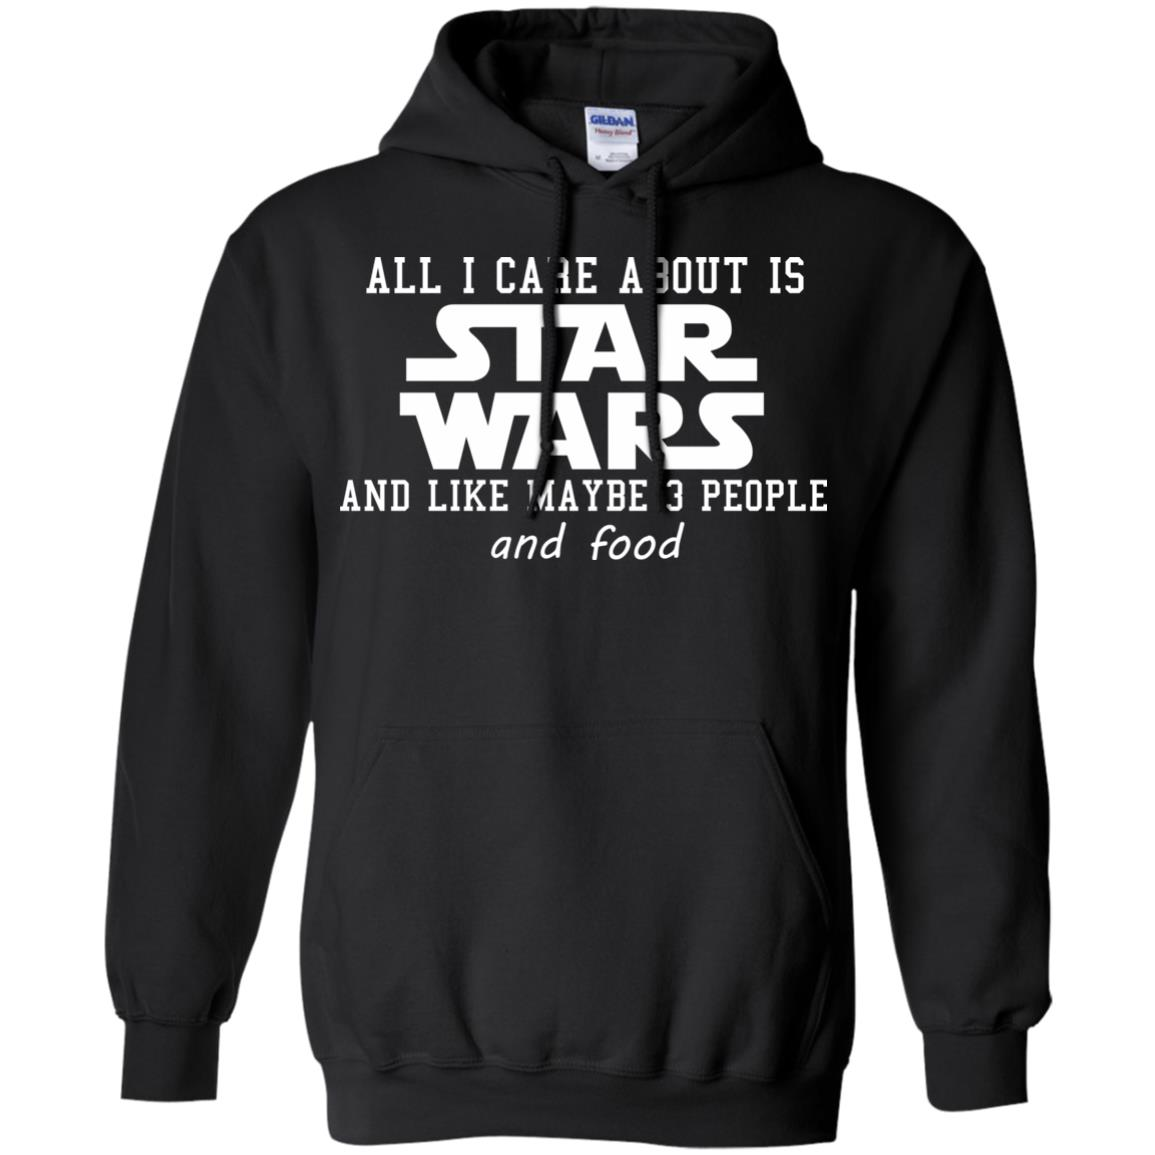 image 605 - All I care about is Star Wars & like maybe 3 people & food